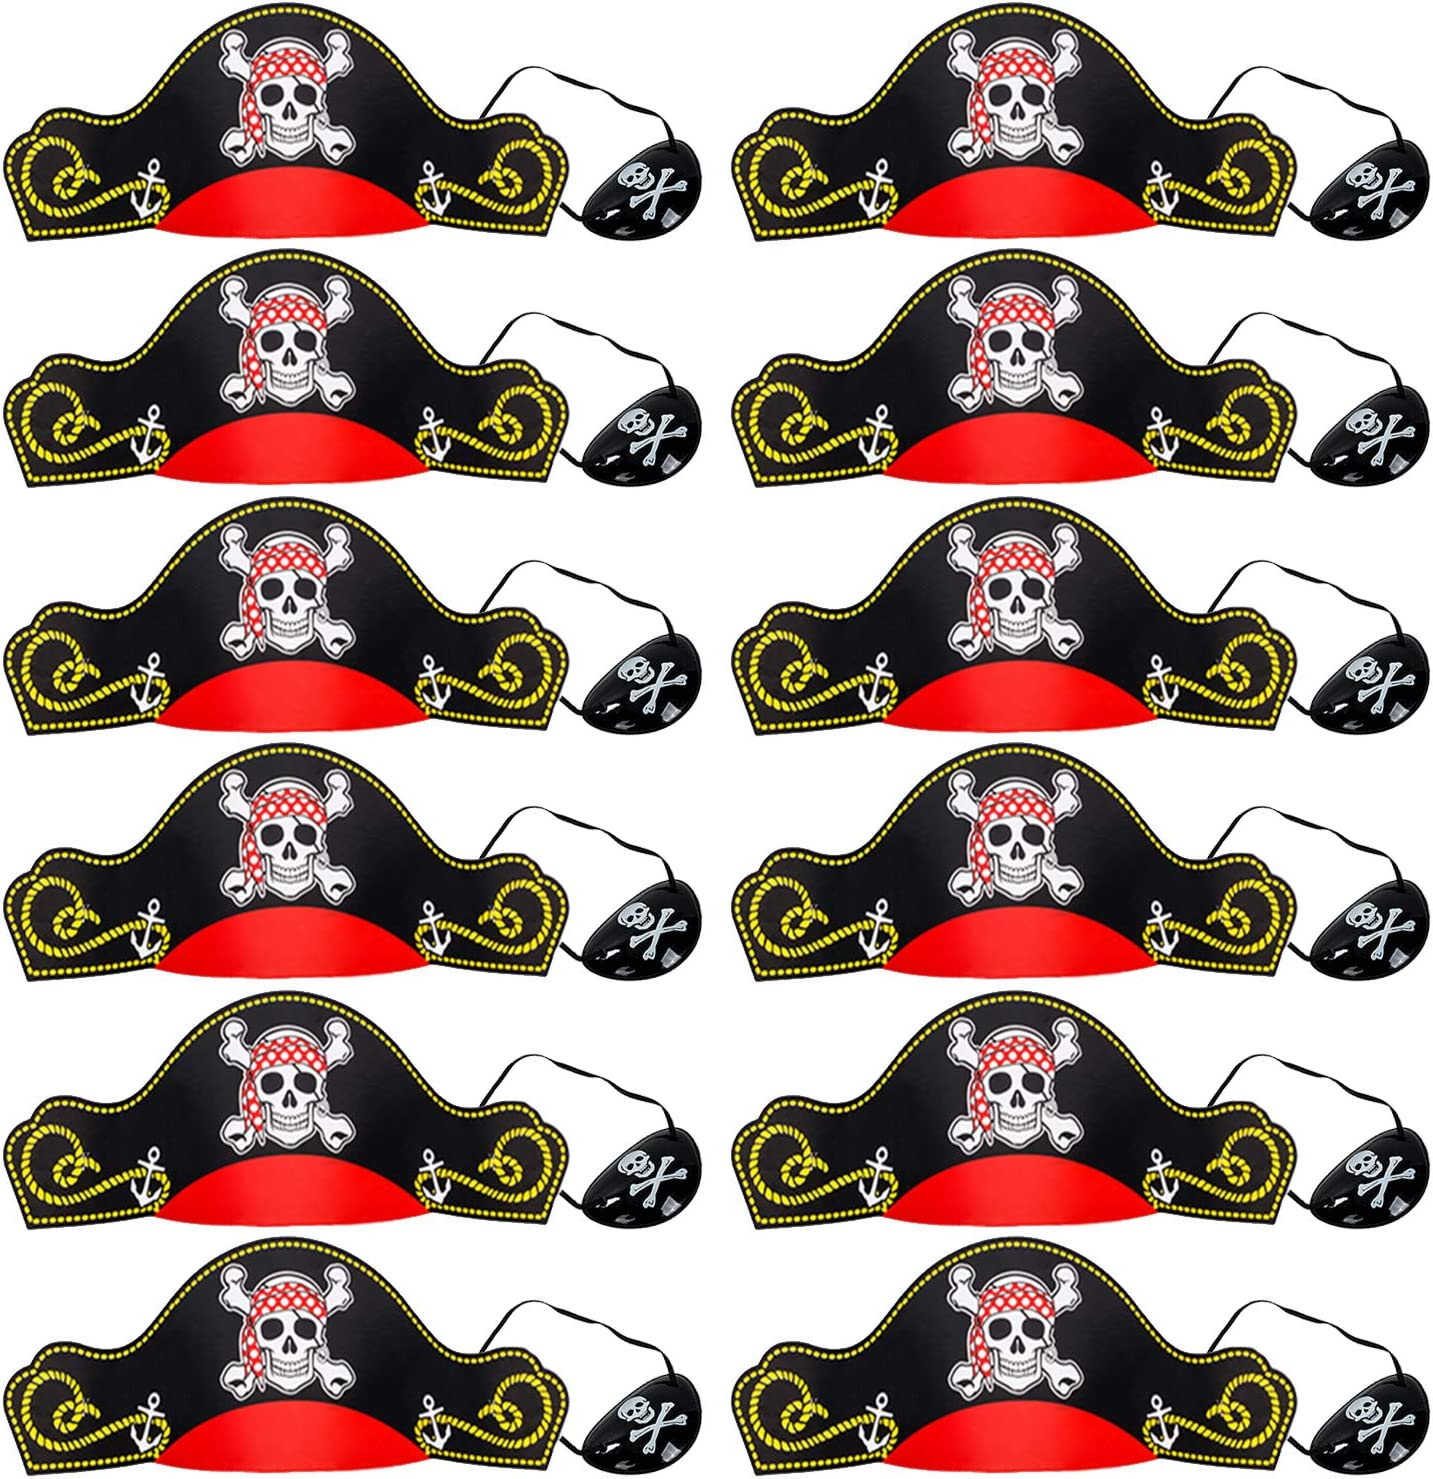 Pirate Party Supplies for Kids - Pirate Hats, Eye Patches, Party Favors - Pirate Party Decorations by Tigerdoe (12 Pirate Hats & 12 Pirate Eye Patches)